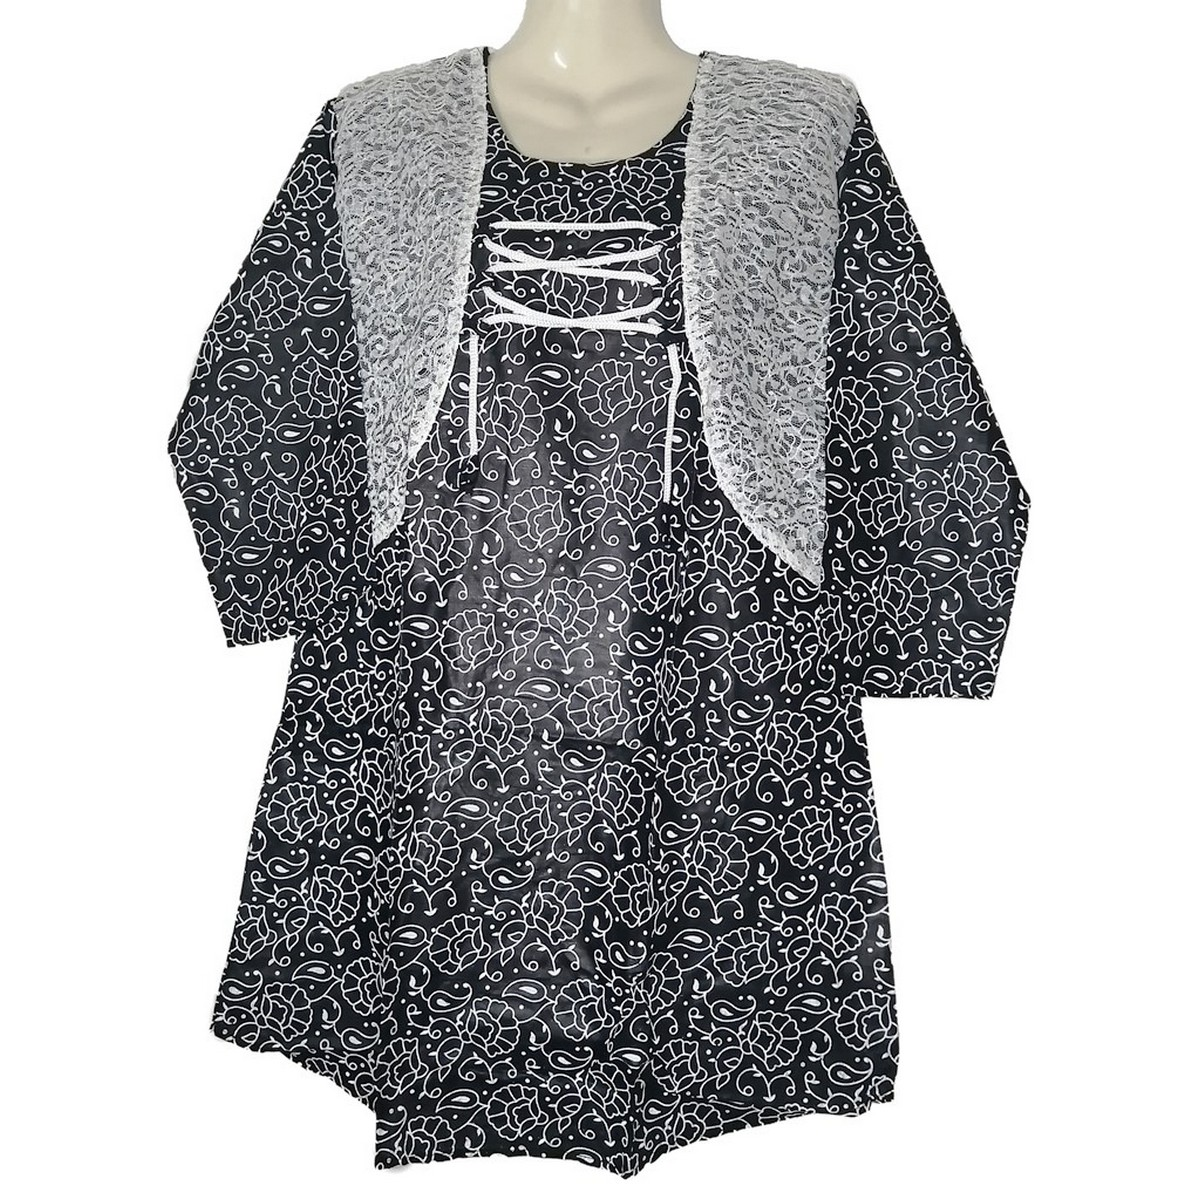 Lawn Printed Stylish Ladies Tops Jacket Style Ready to Wear for Women ST-23